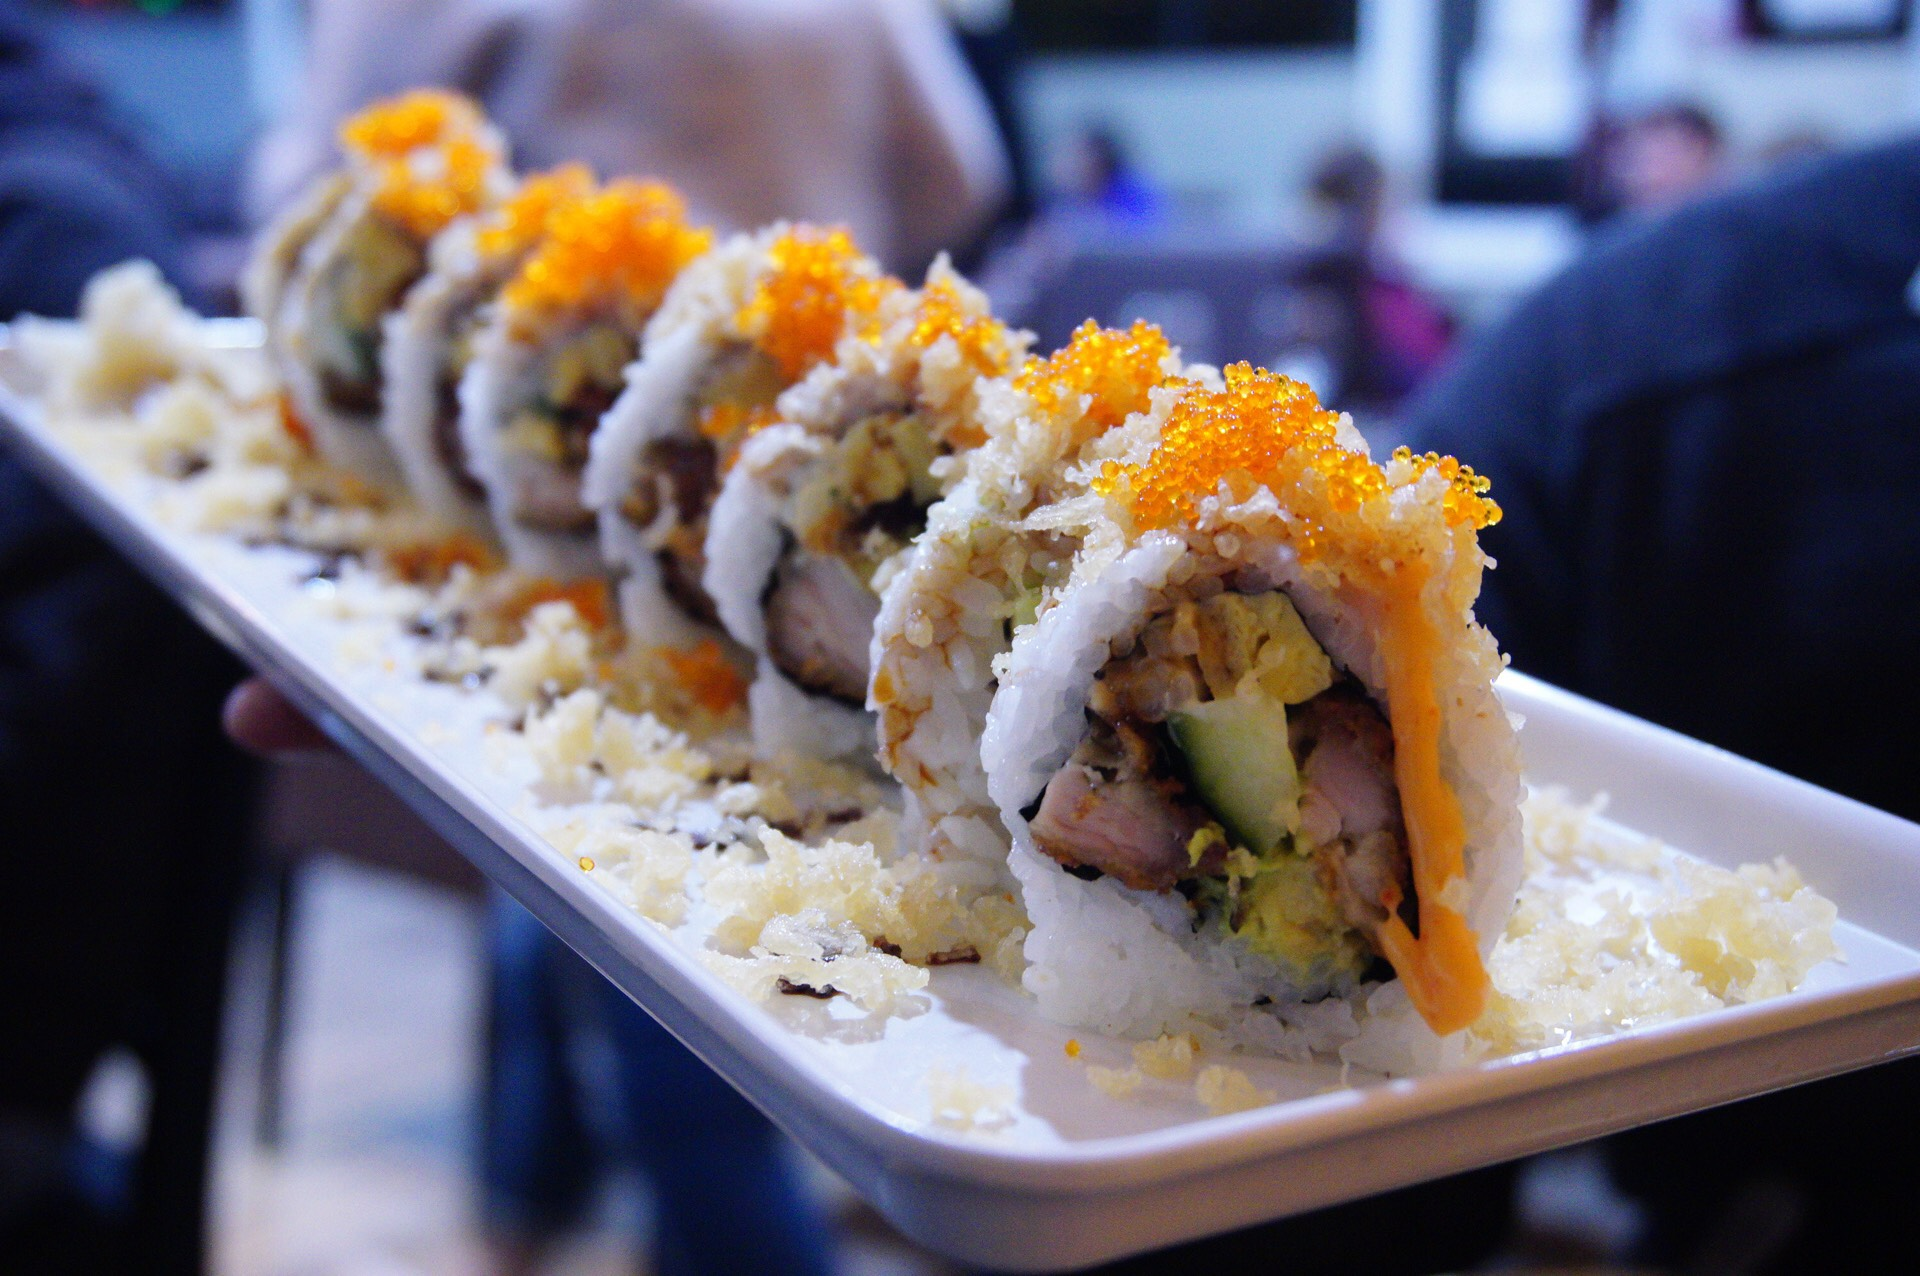 Crunchy Roll, very huge!